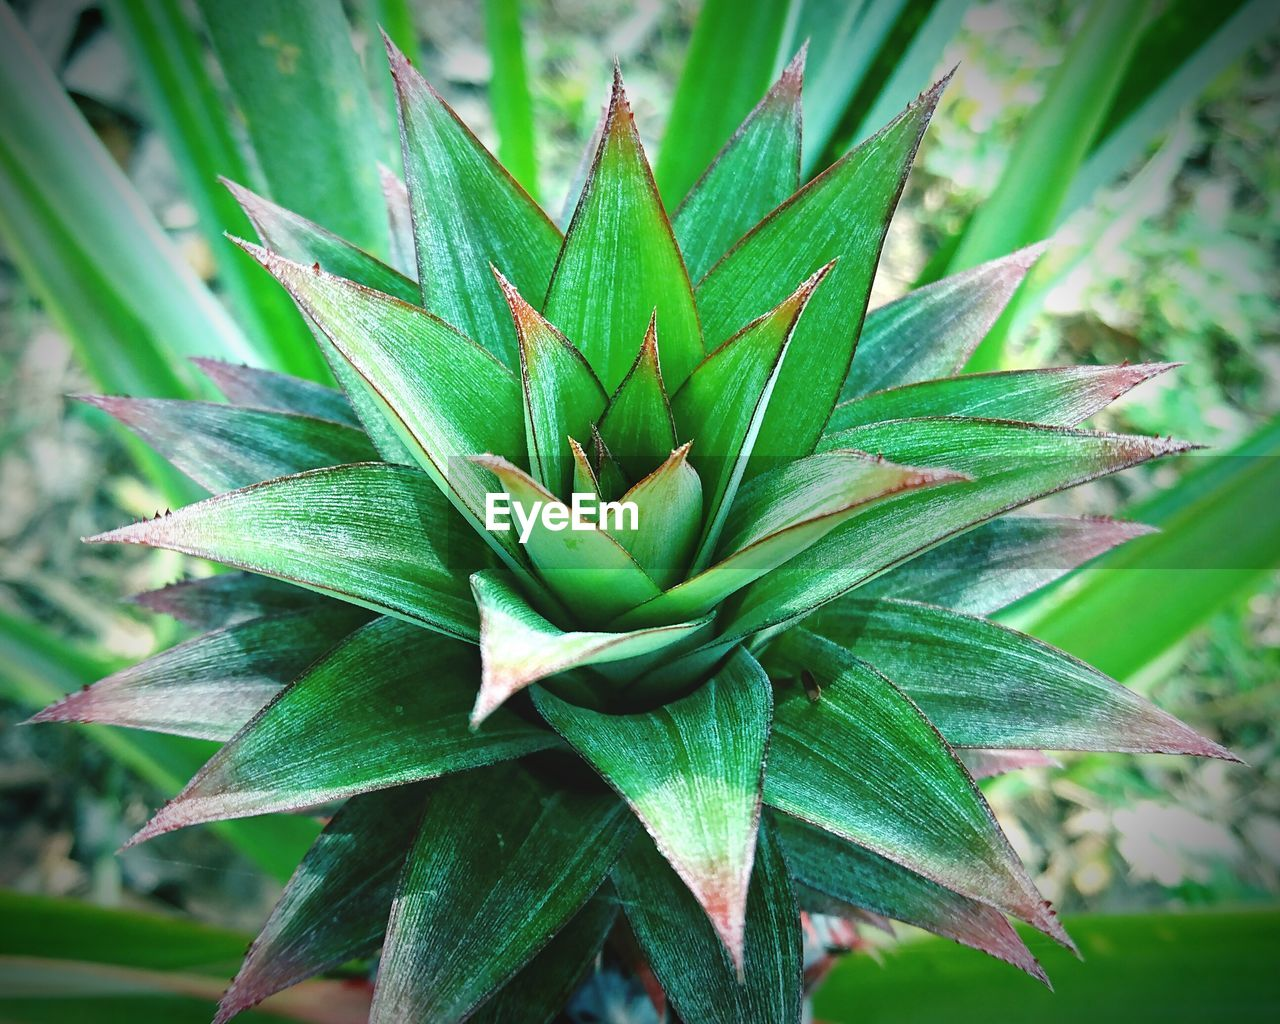 green color, growth, plant, plant part, leaf, close-up, beauty in nature, nature, day, no people, focus on foreground, succulent plant, outdoors, medicine, natural pattern, aloe, herb, tranquility, aloe vera plant, green